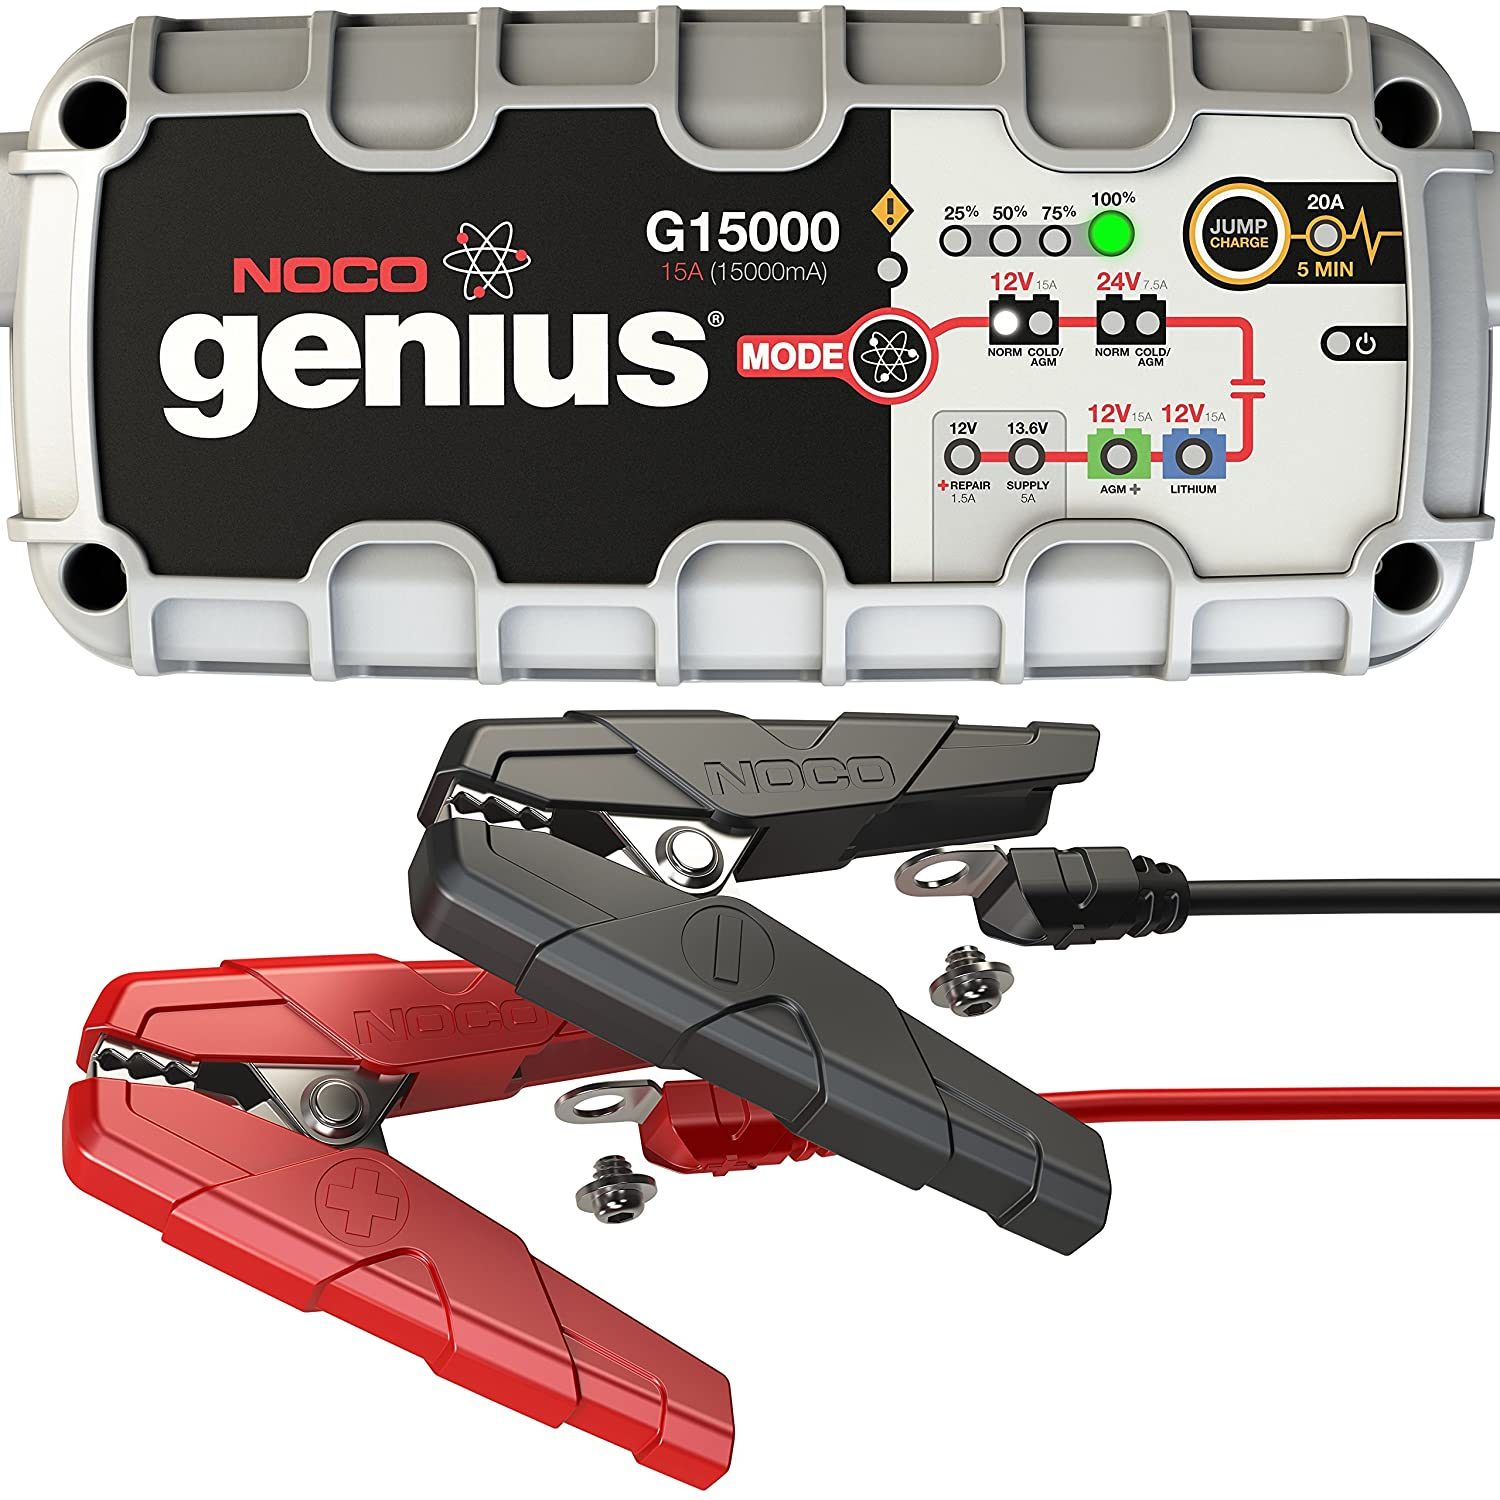 NOCO Genius G15000 Pro-Series Battery Charger